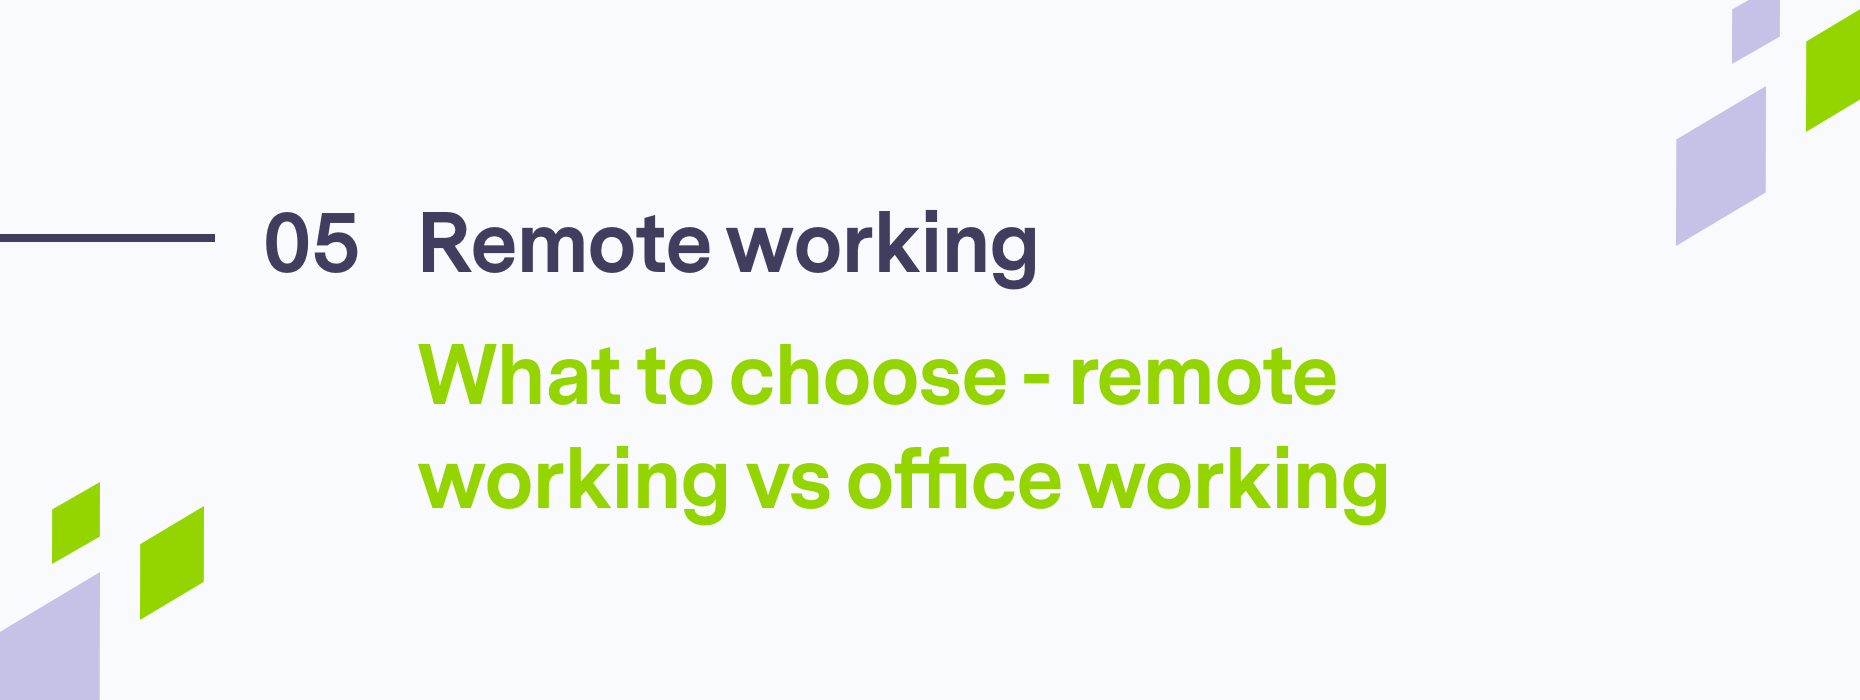 What to choose - remote working vs office working